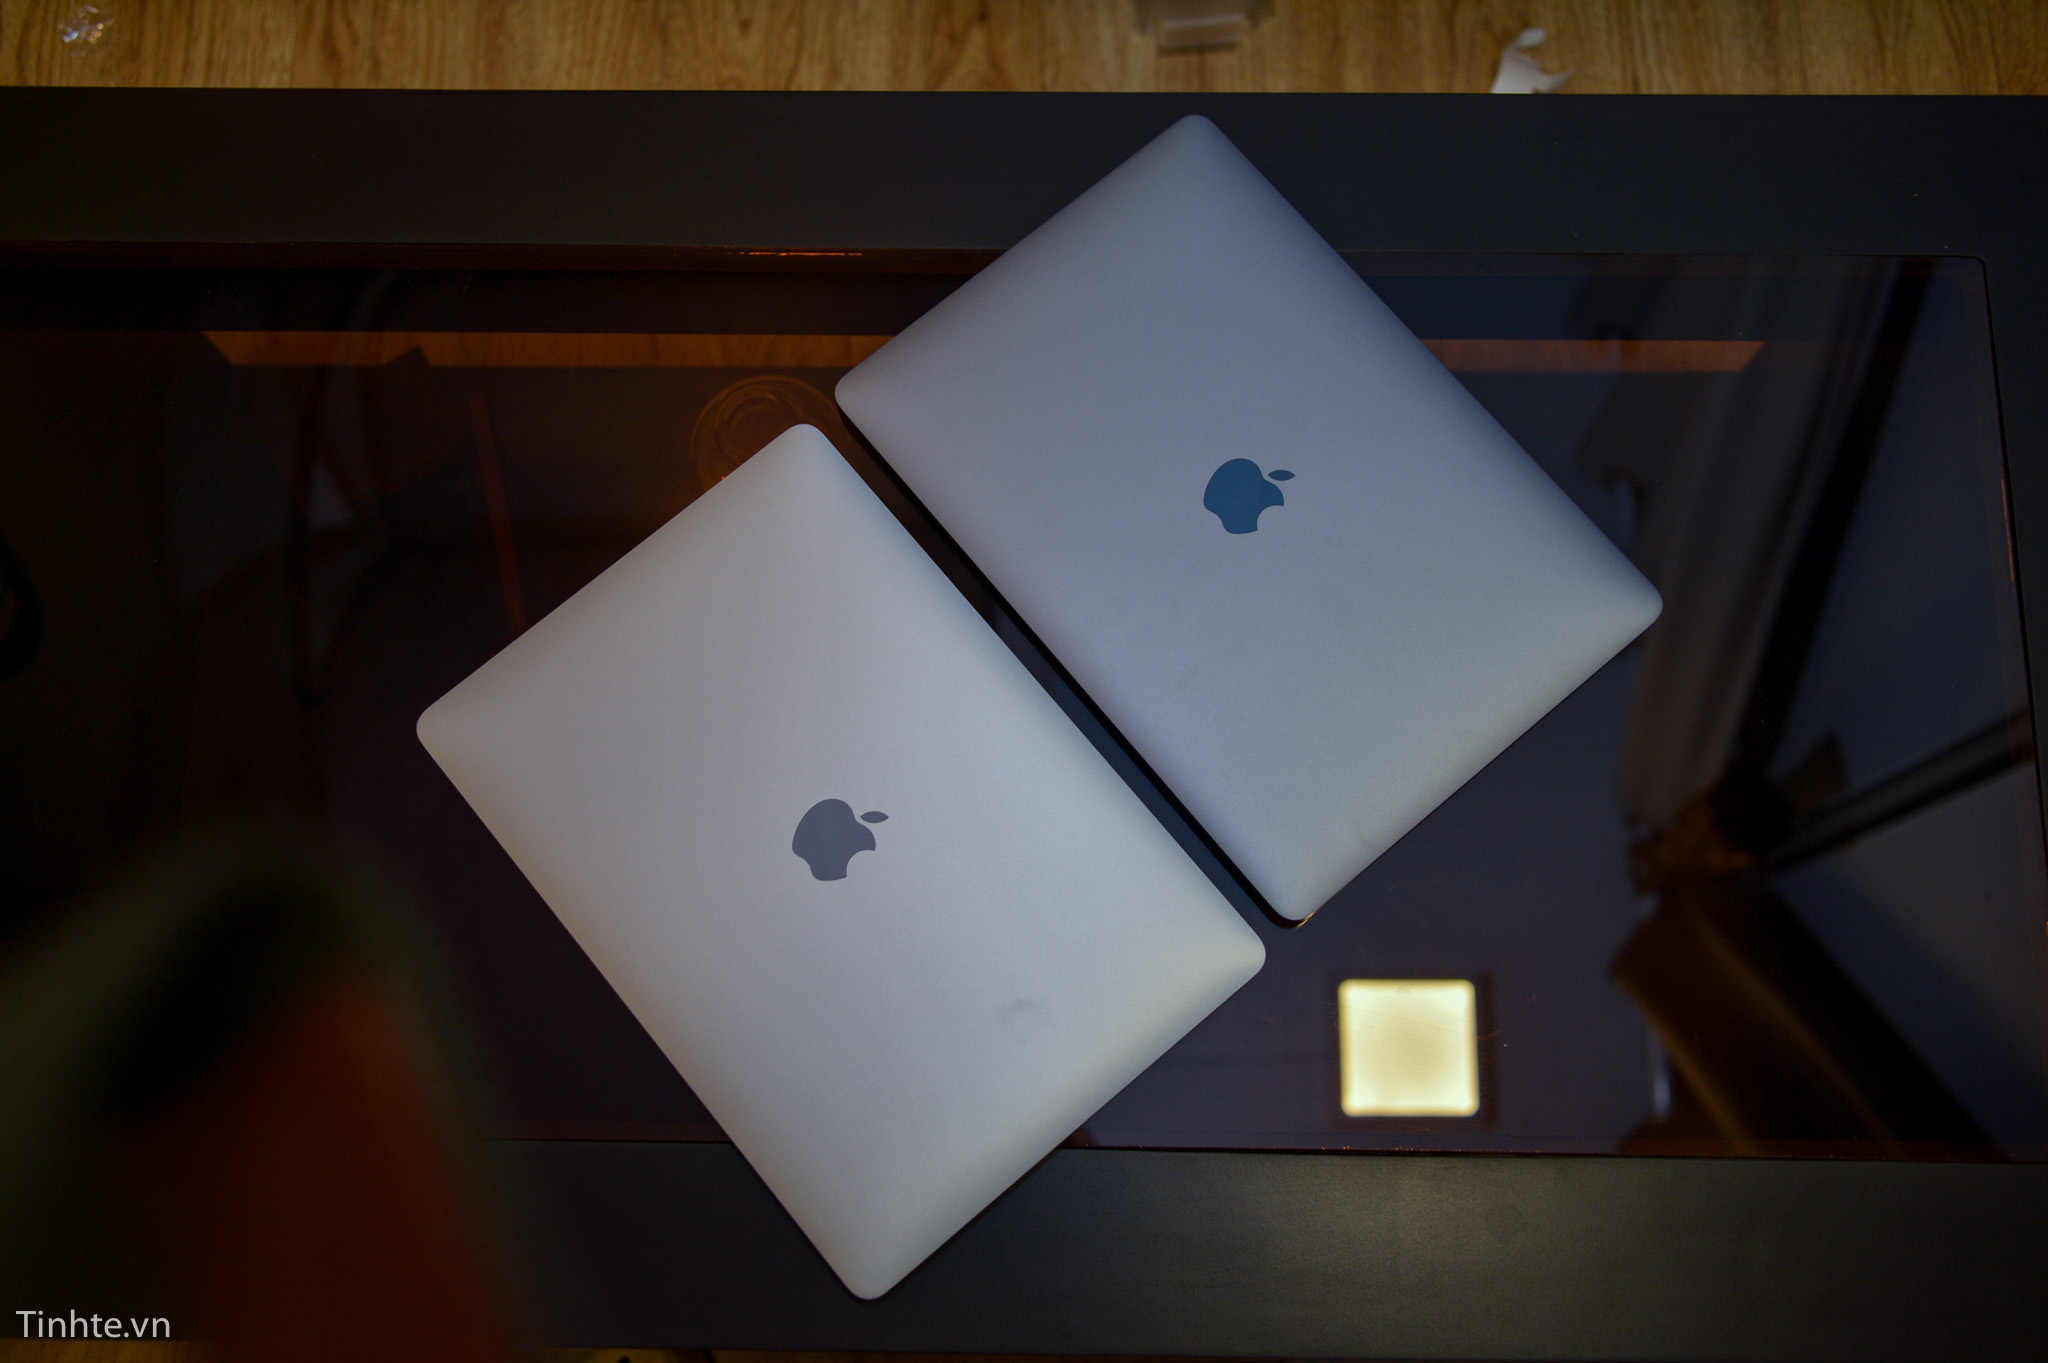 Macbook_Pro_13_late_2016-24.jpg